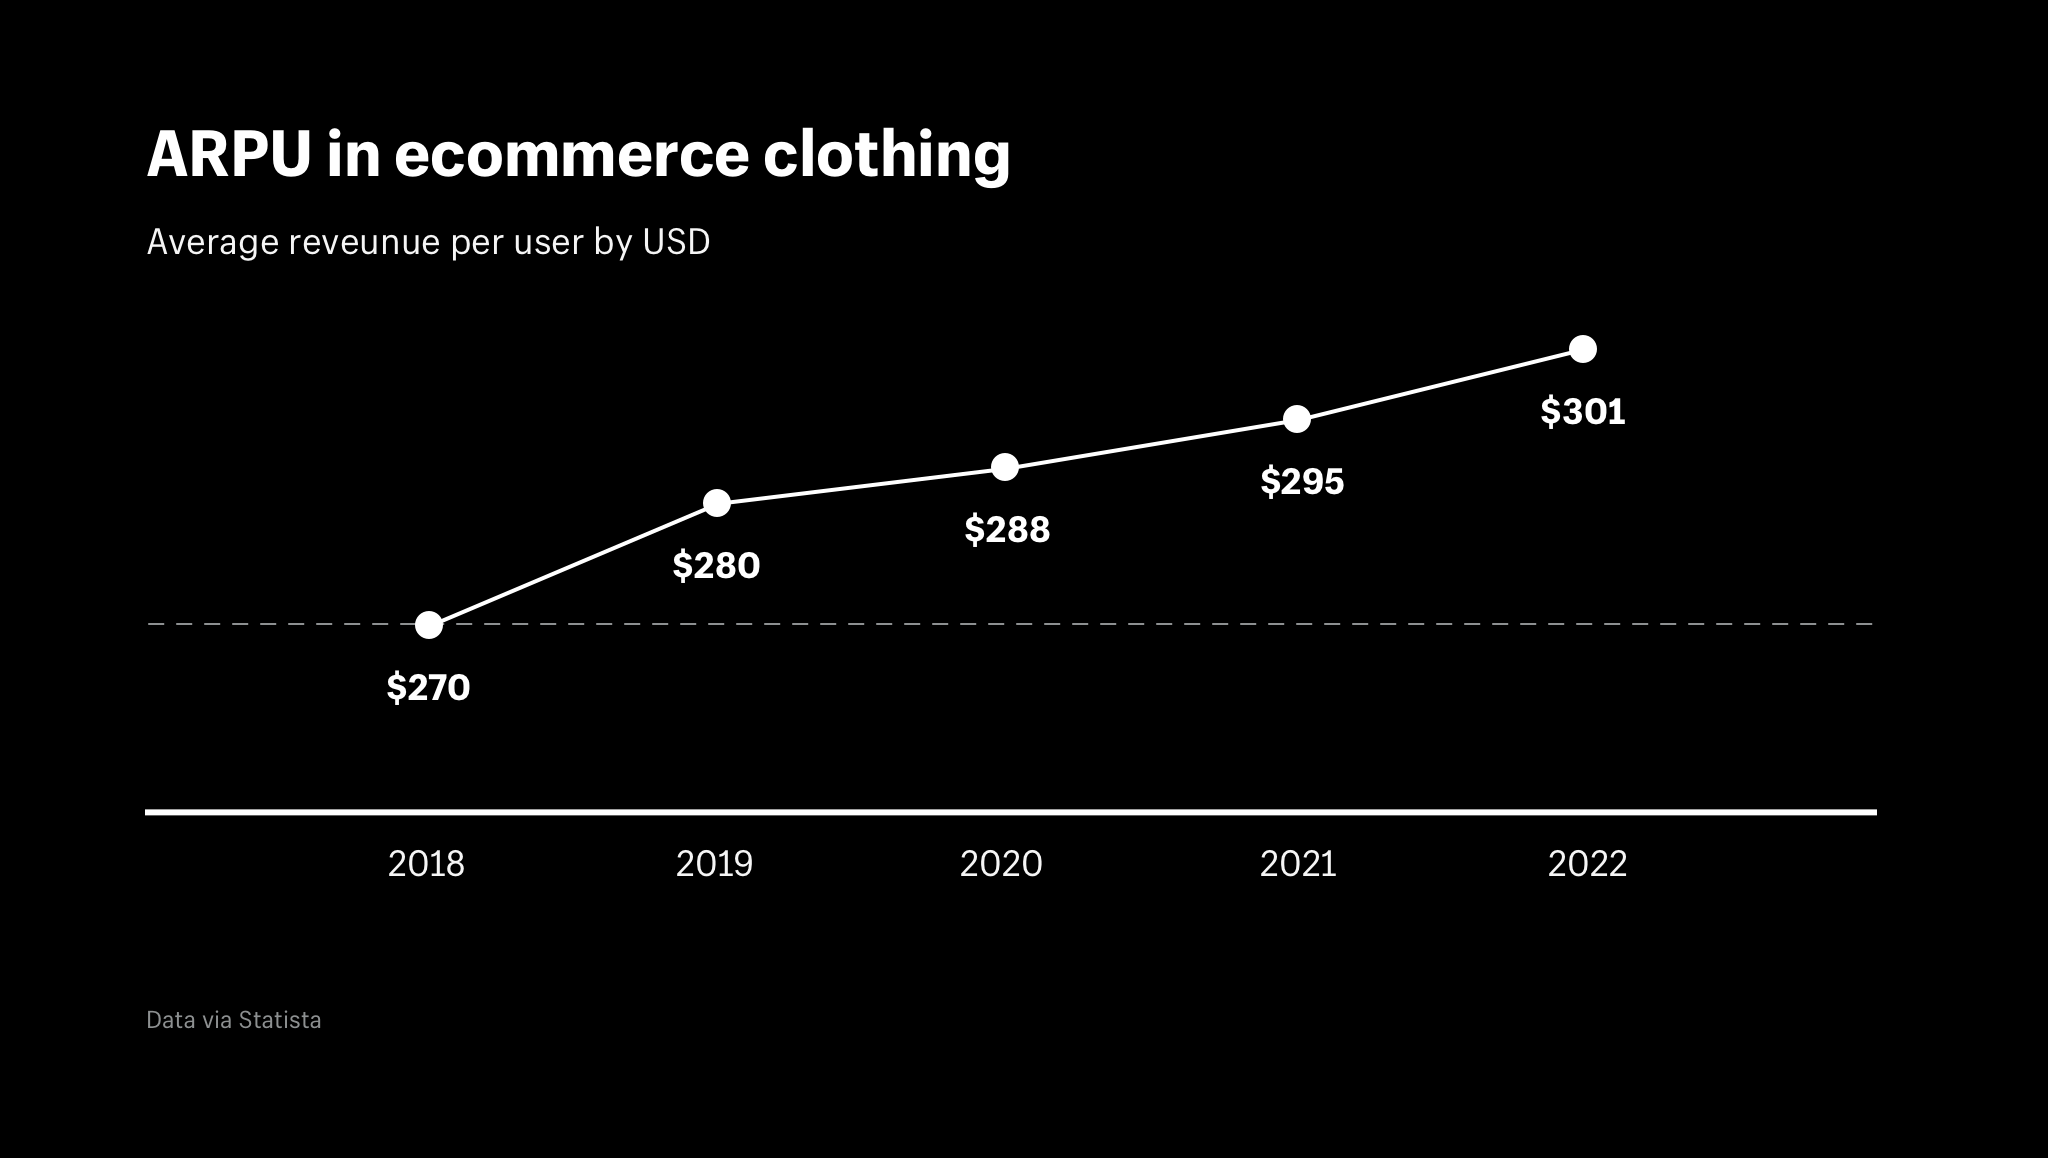 Average revenue per user (ARPU) in ecommerce clothing